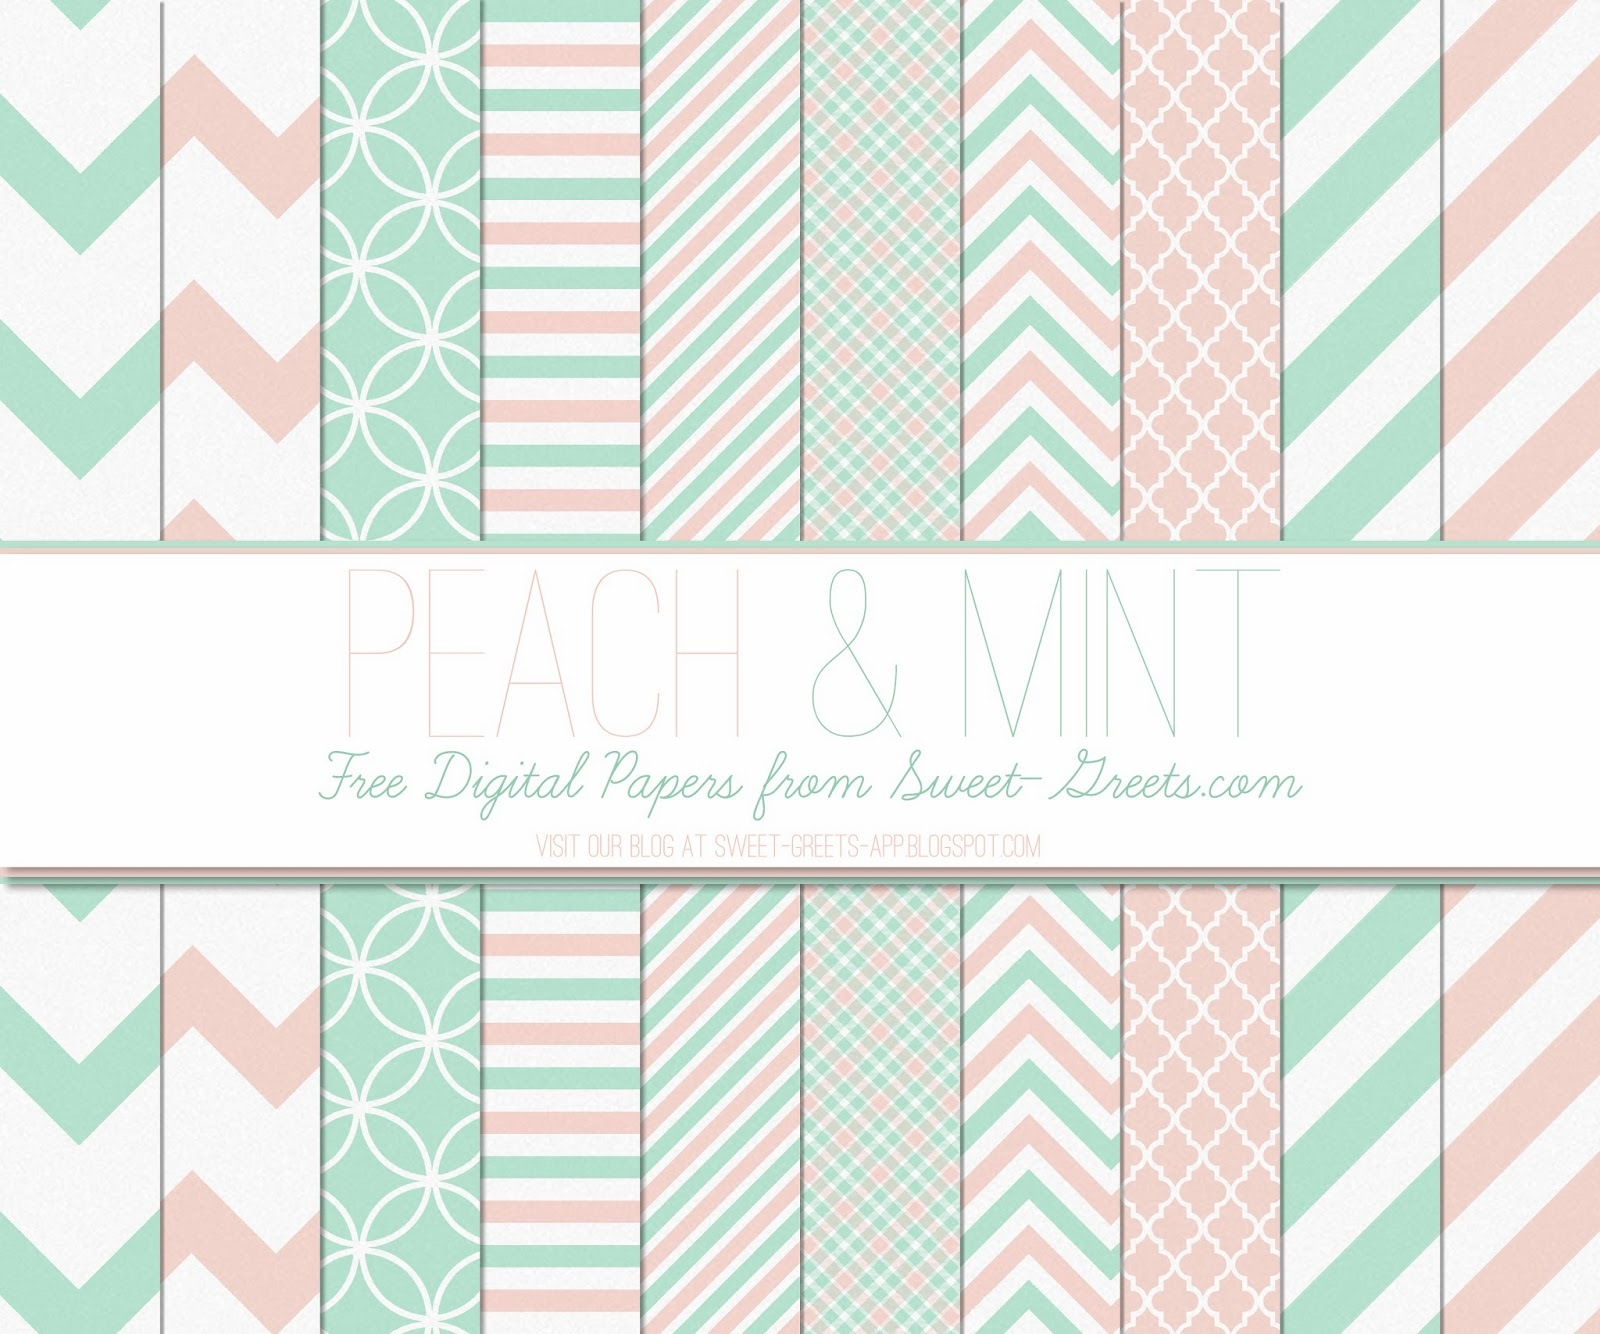 Free Digital Papers: Peach and Mint